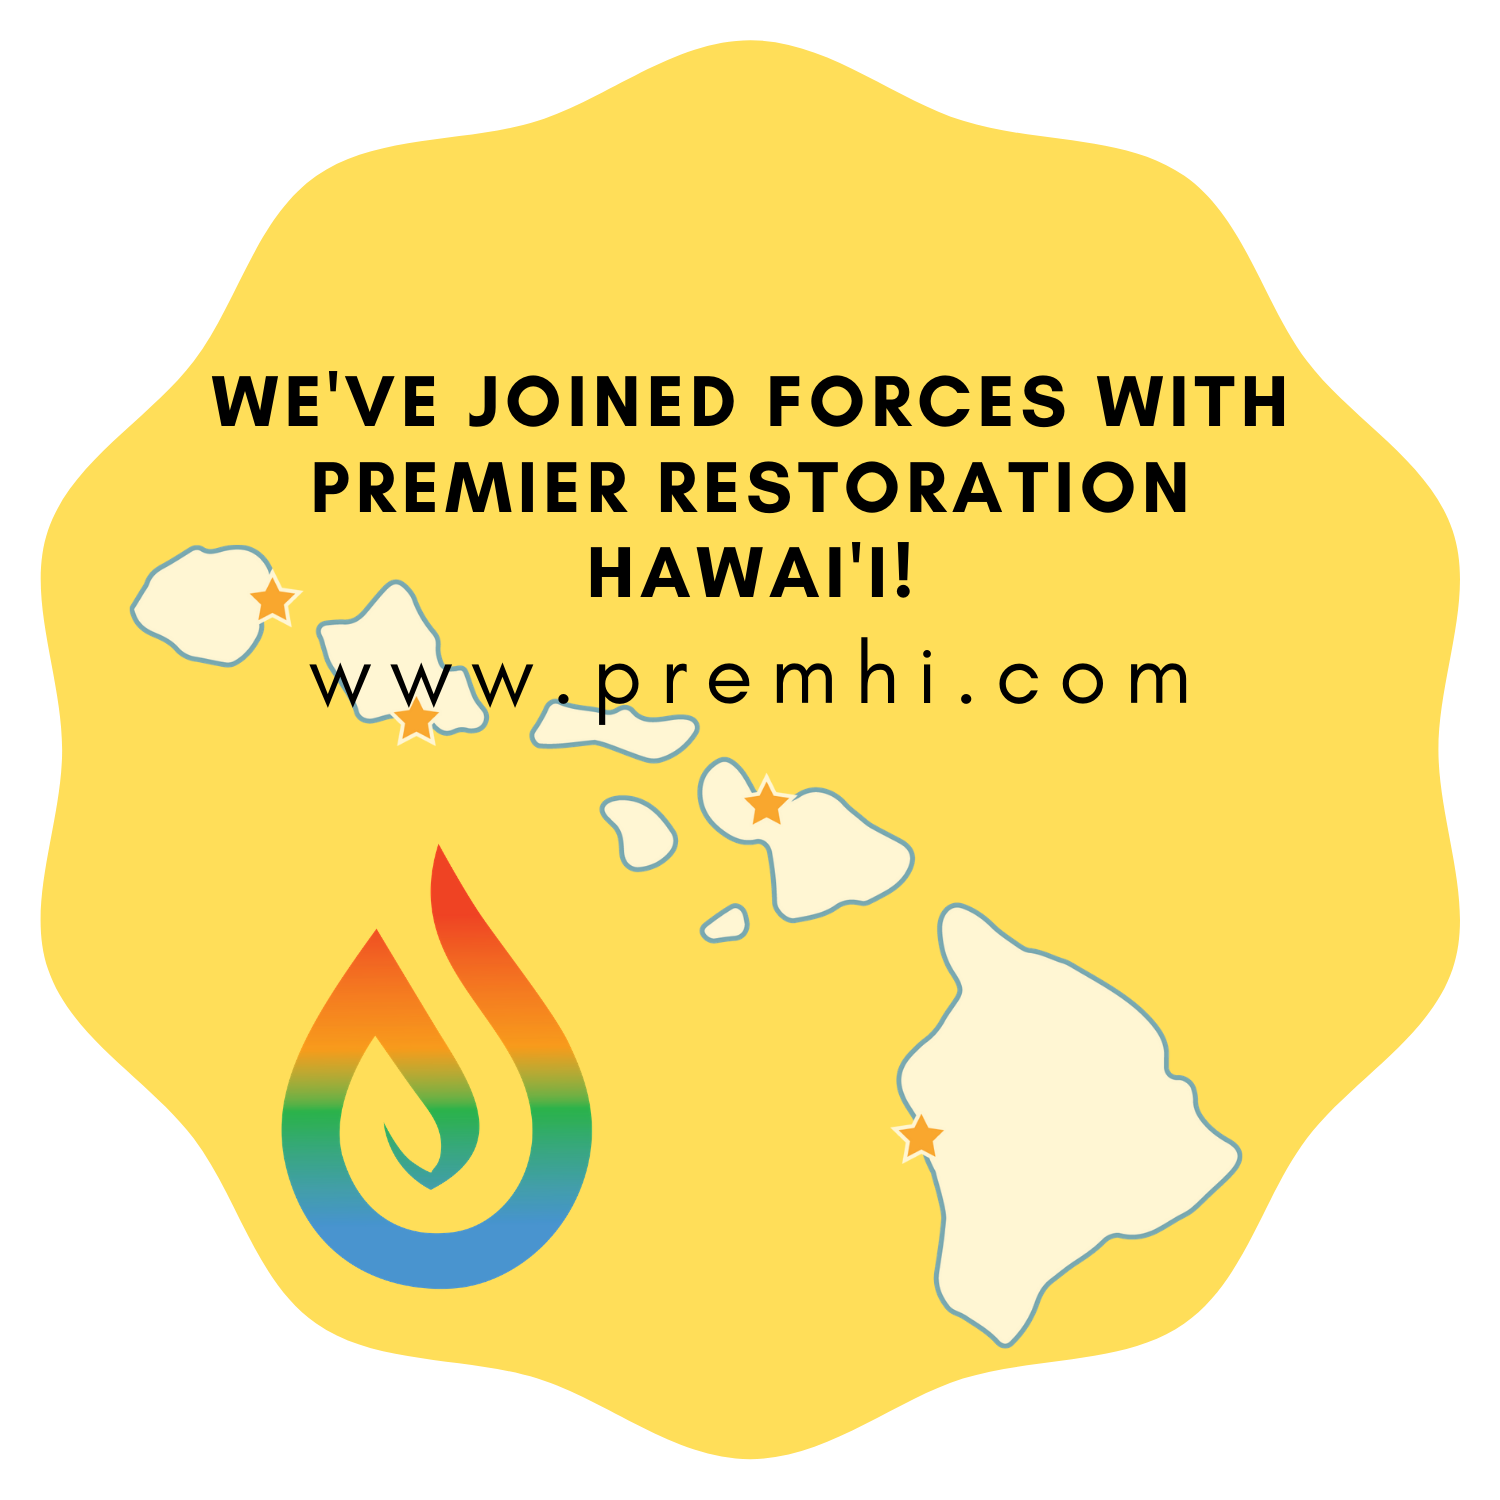 We've Joined Forces with Premier Restoration Hawaii